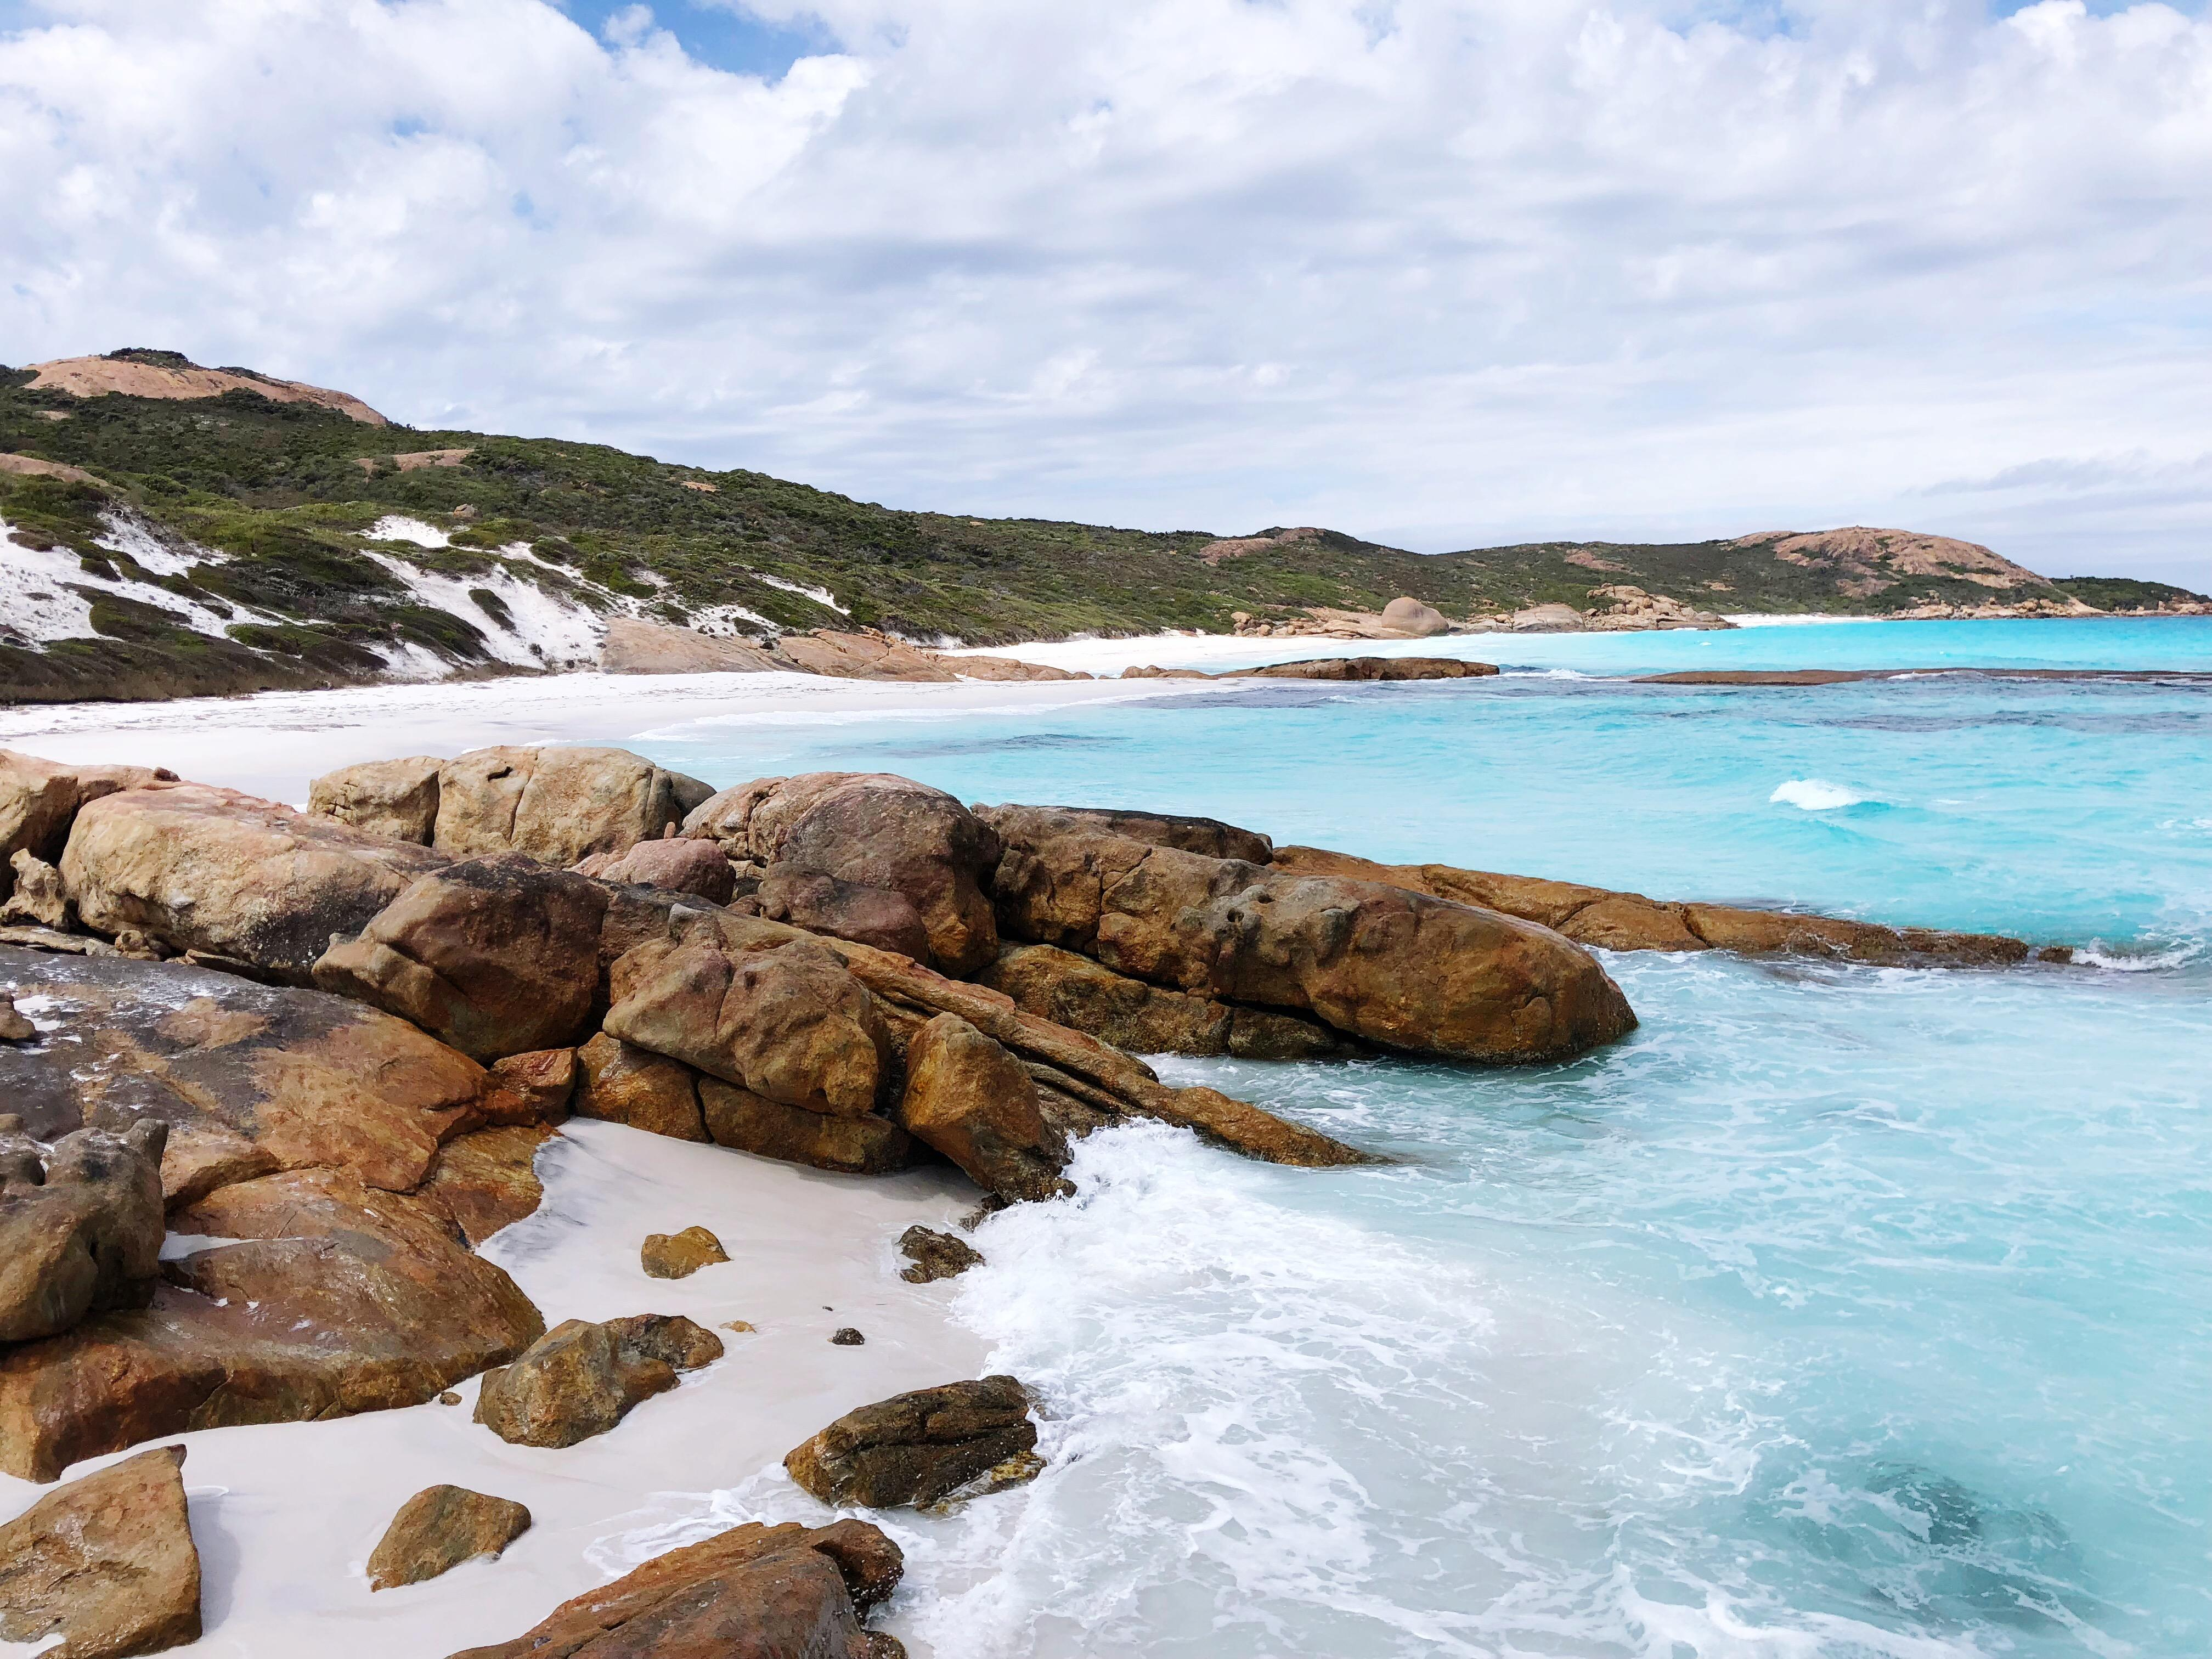 Photo taken in Esperance, Australia